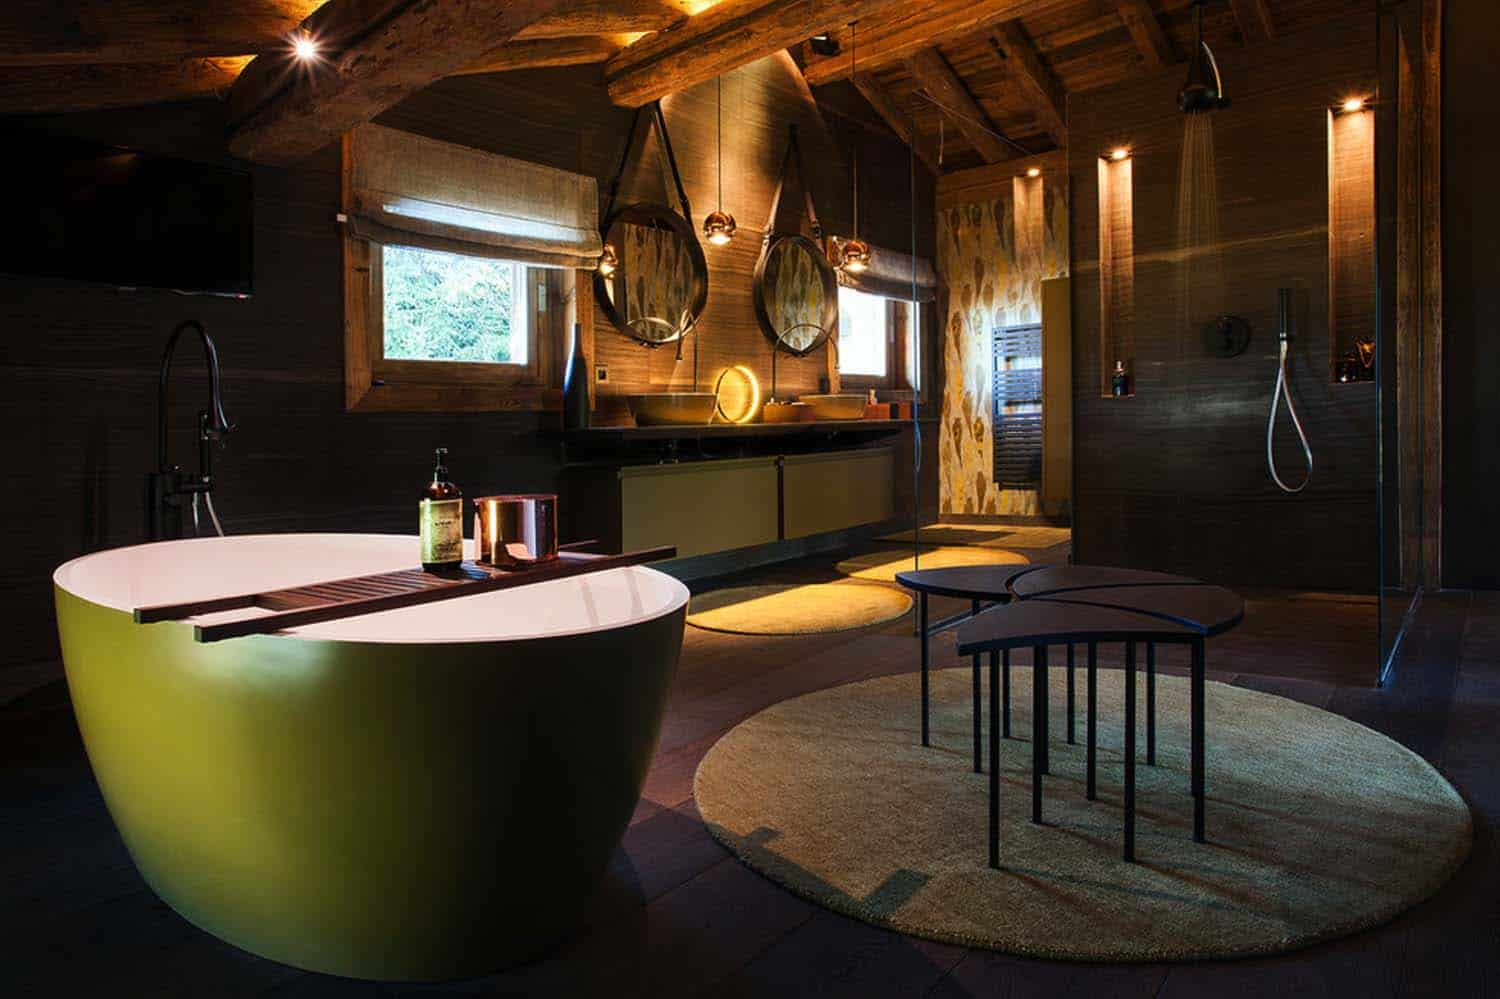 luxury-mountain-chalet-refuge-14-1-kindesign